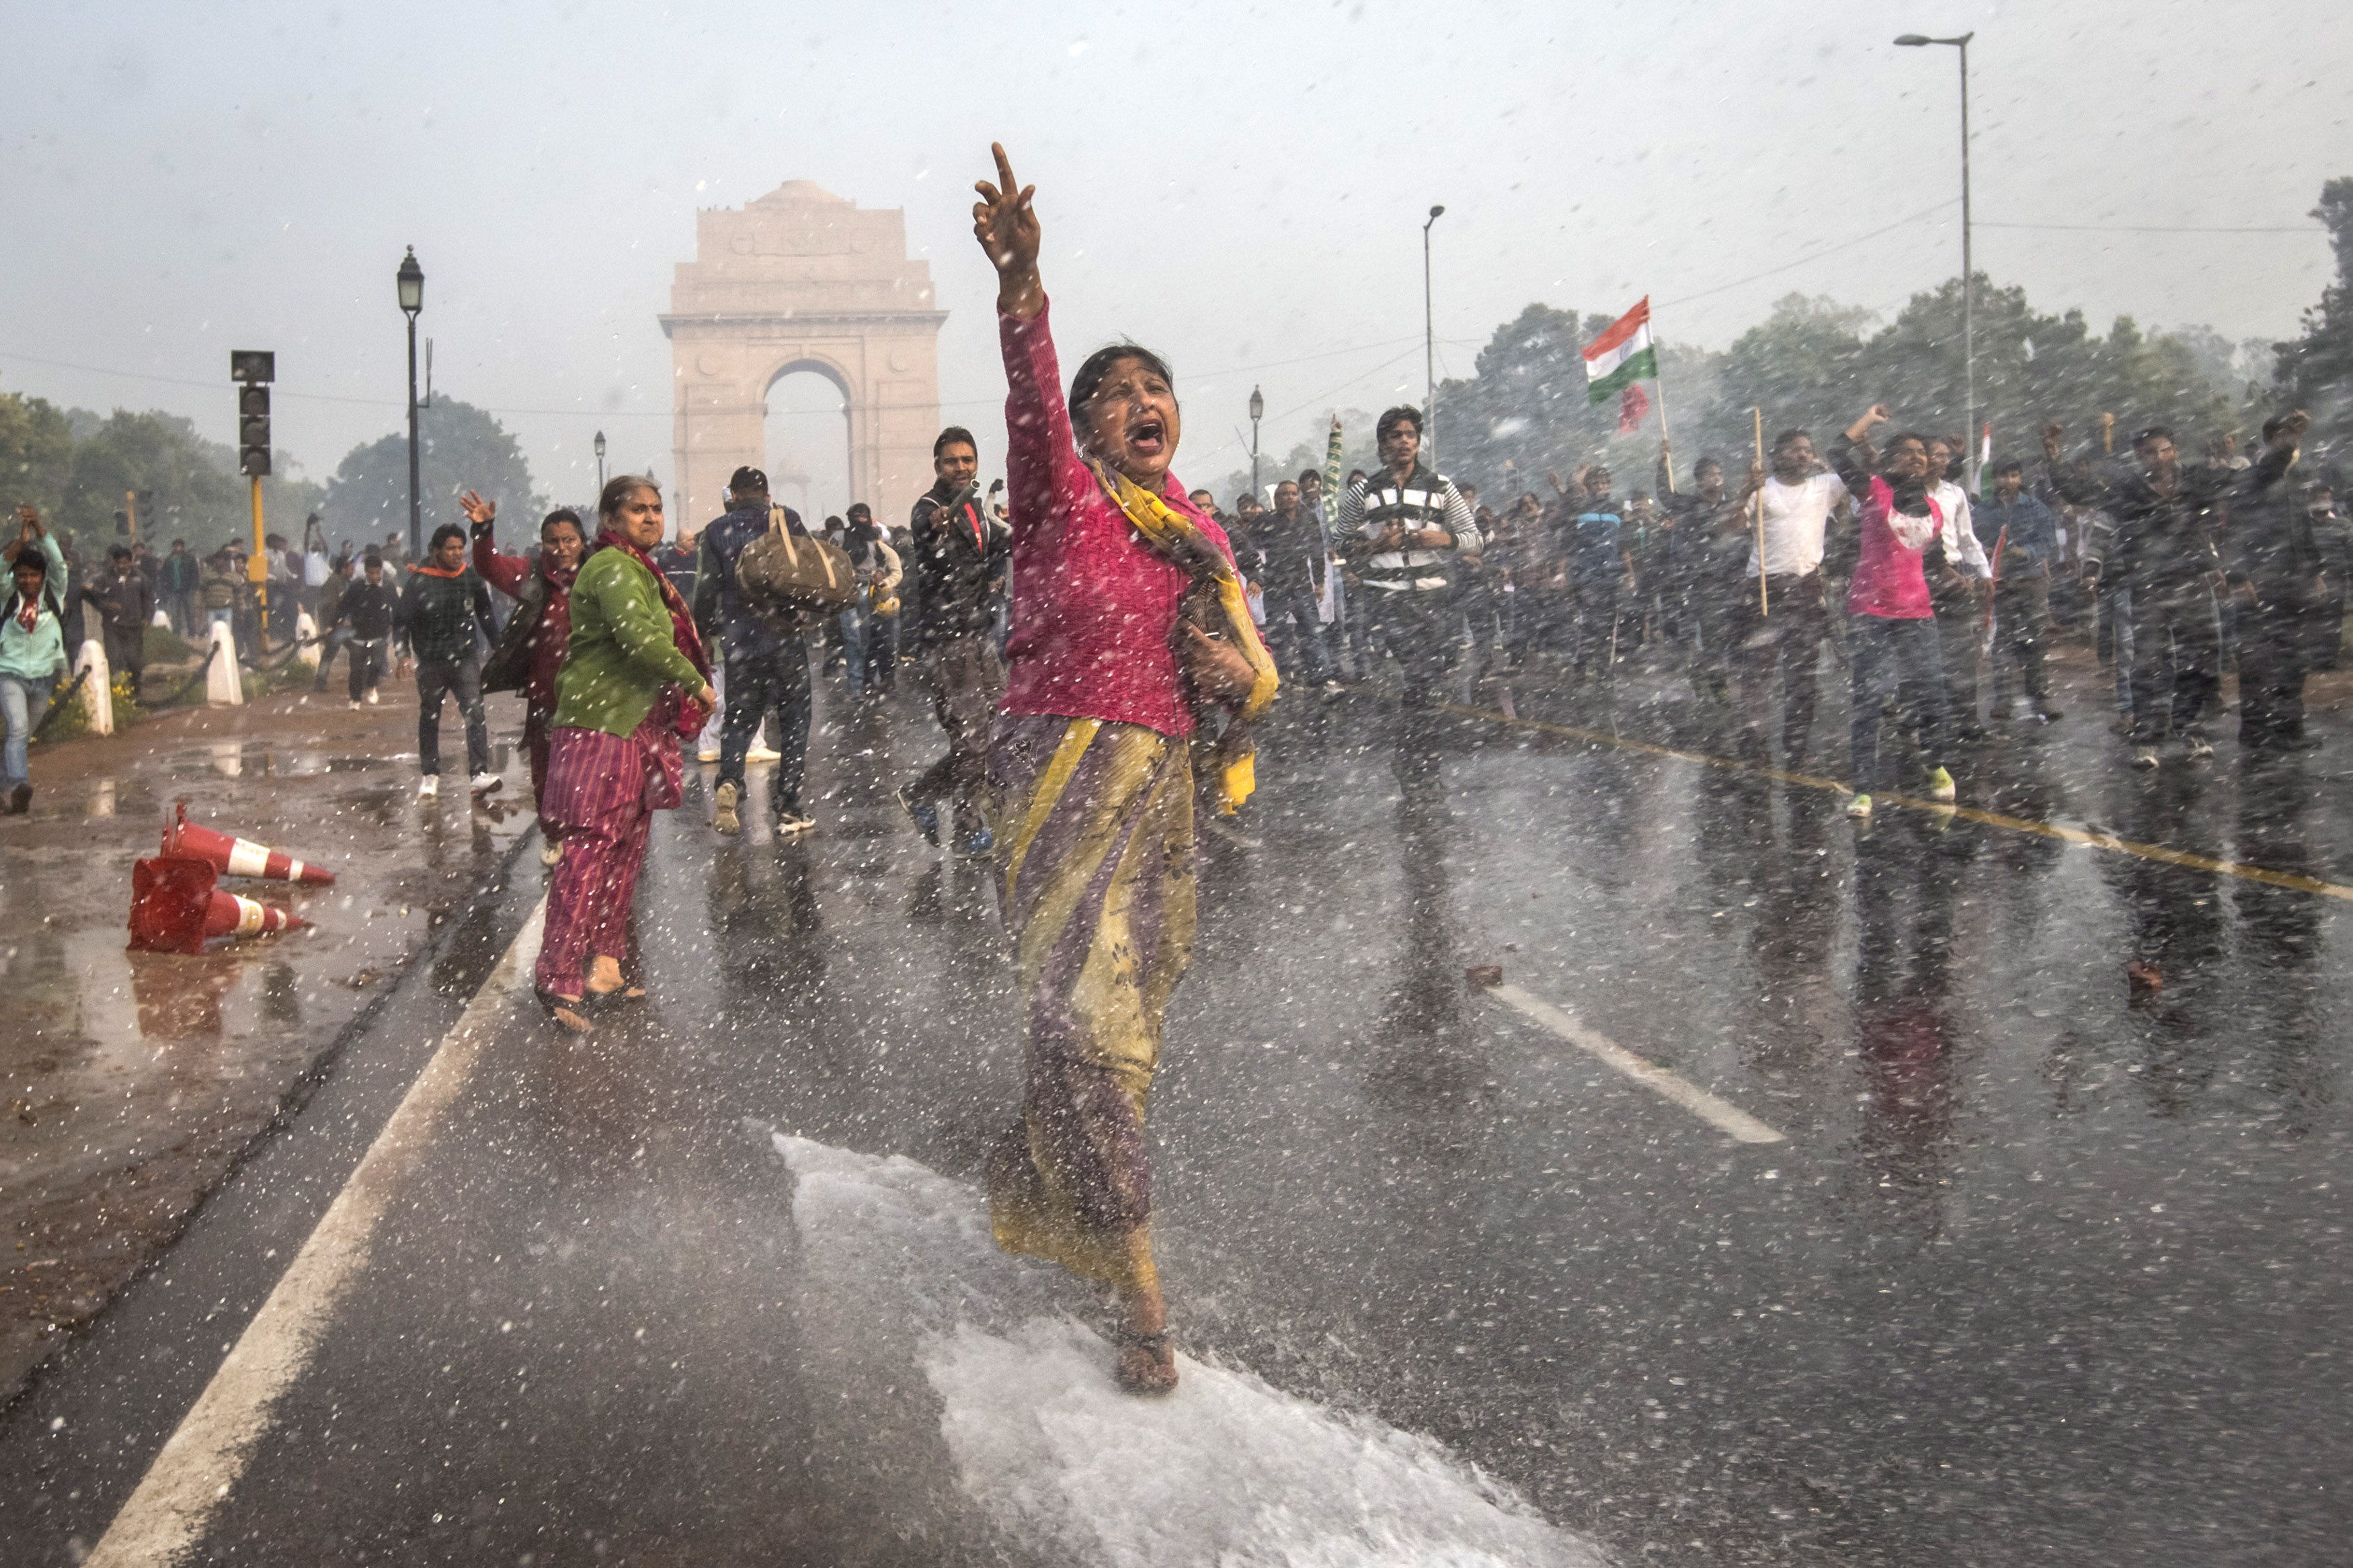 A protester chants slogans as she braces herself against the spray fired from police water canons during a protest against the Indian government's reaction to recent rape incidents in India, in front of India Gate on December 23, 2012, in New Delhi, India. (Getty)